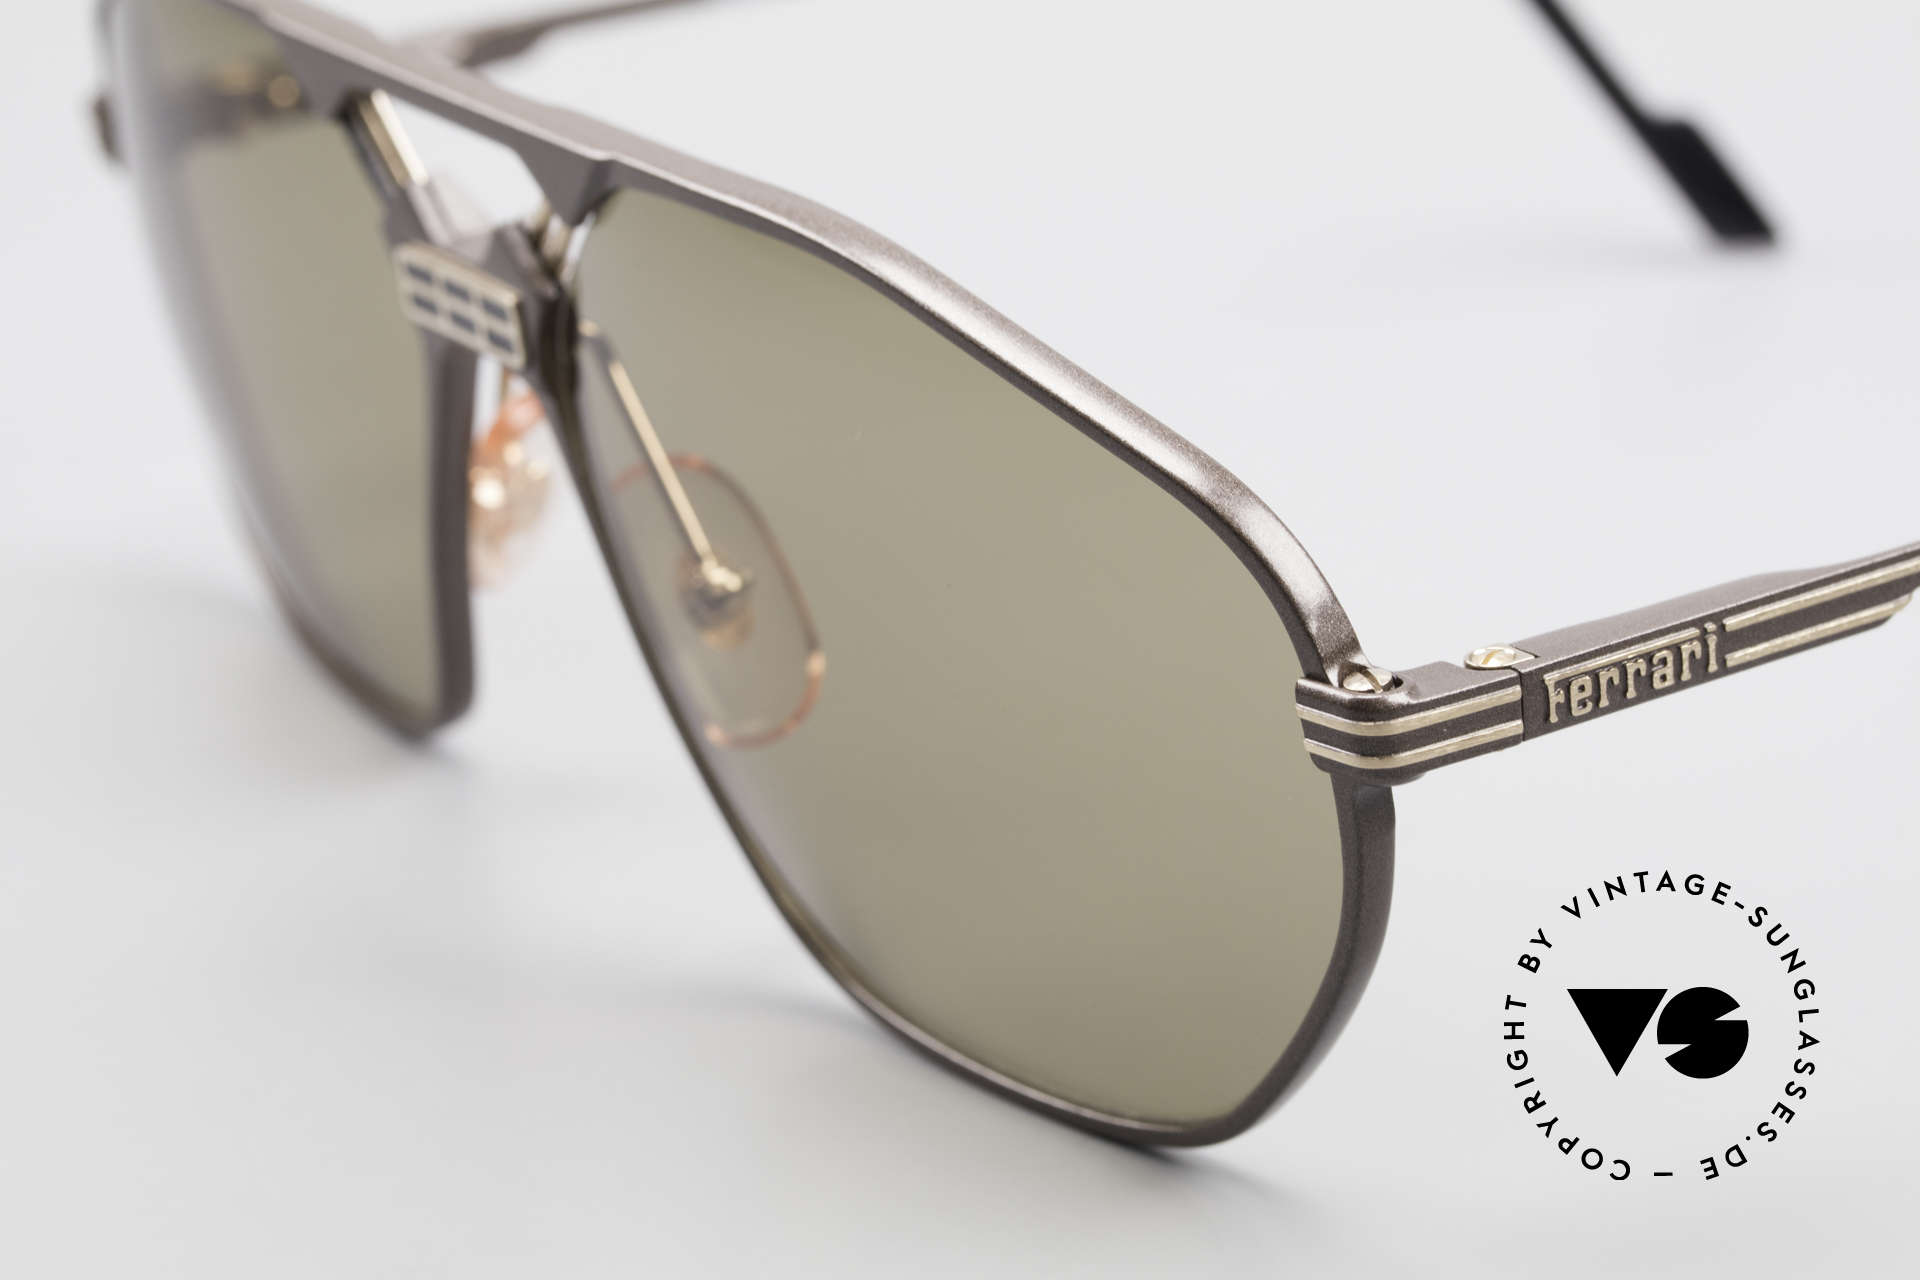 Ferrari F22/S Men's Rare Vintage XL Shades, never worn (like all our RARE vintage Ferrari shades), Made for Men